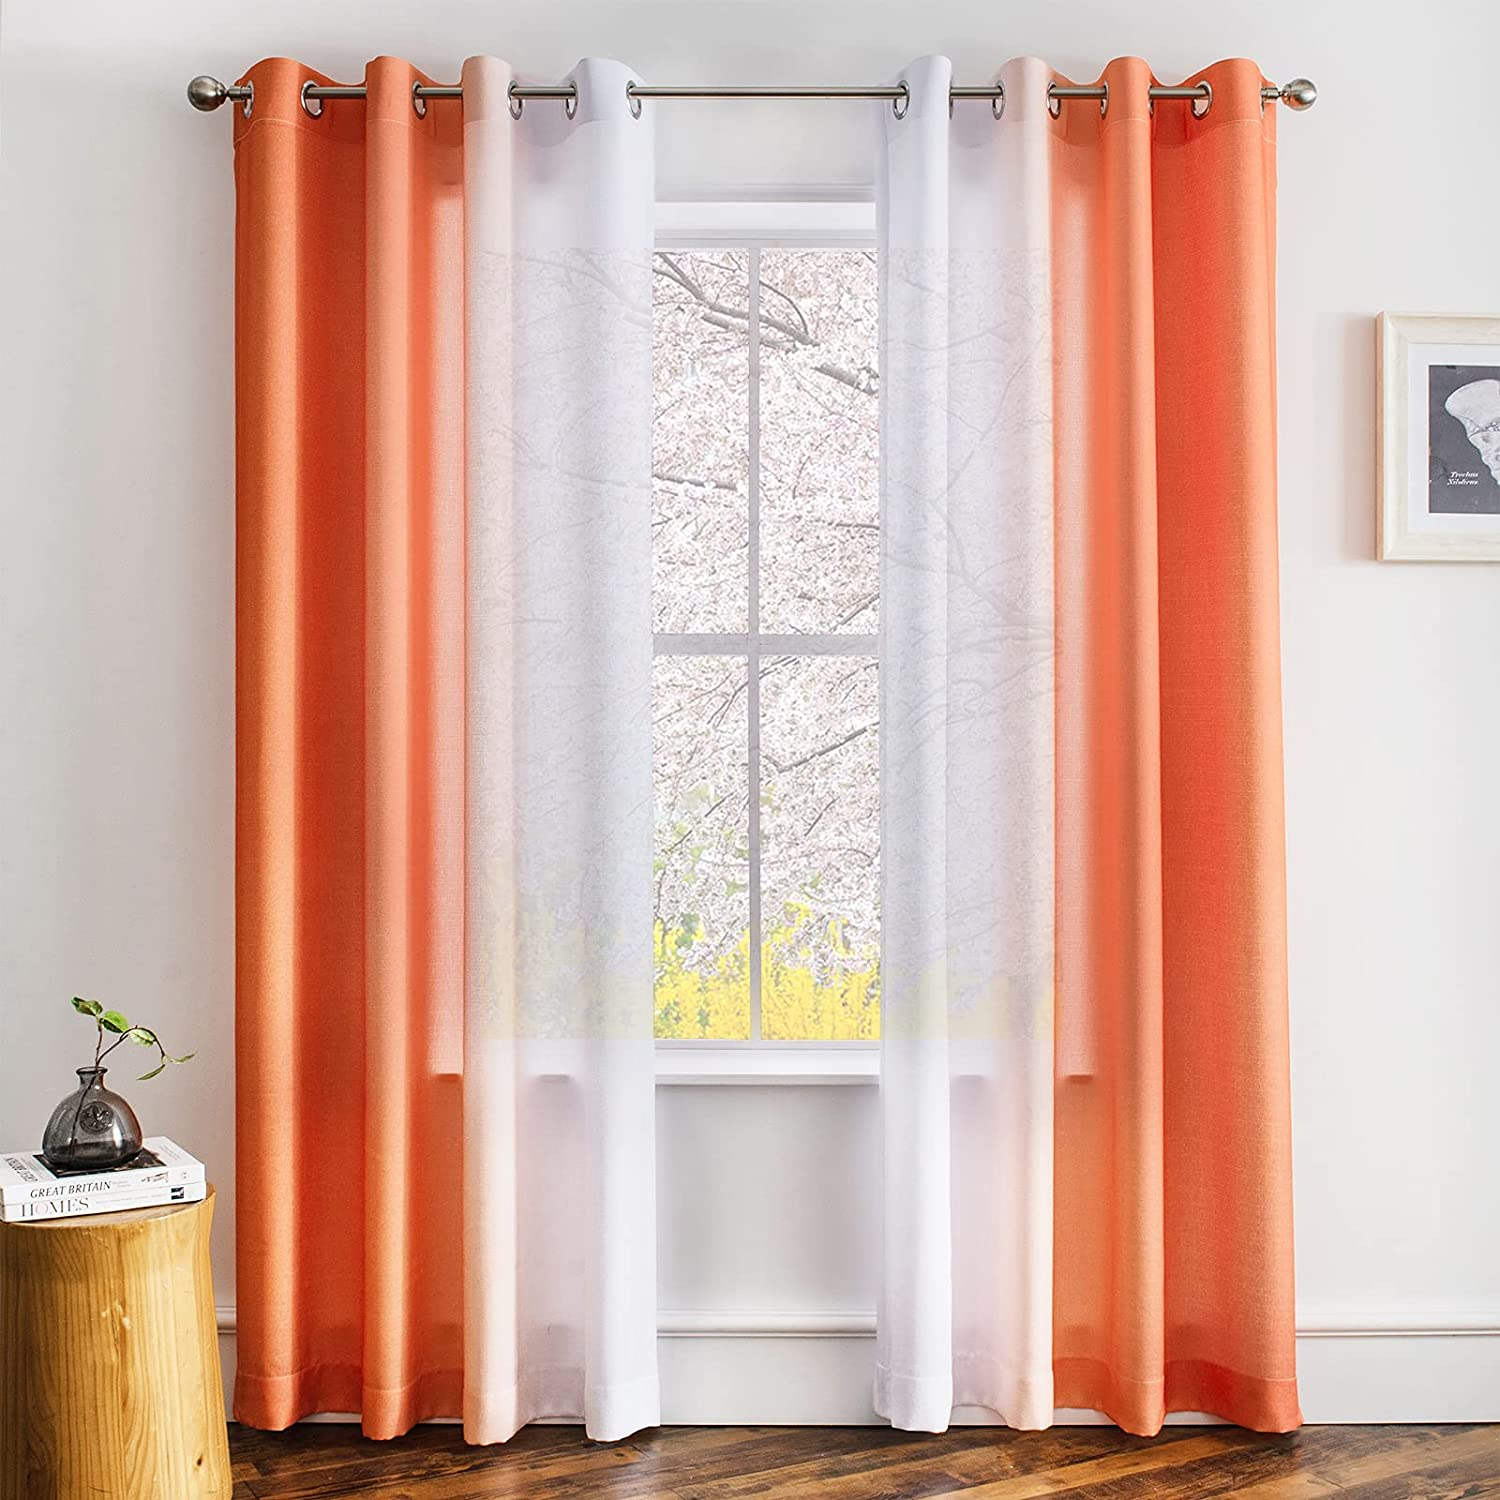 Melodieux Linen Ombre Semi Sheer Curtains 84 Inches Long for Living Room, Orange White Horizontal Gradient Grommet Voile Drapes, 52 x 84 Inch, 2 Panels